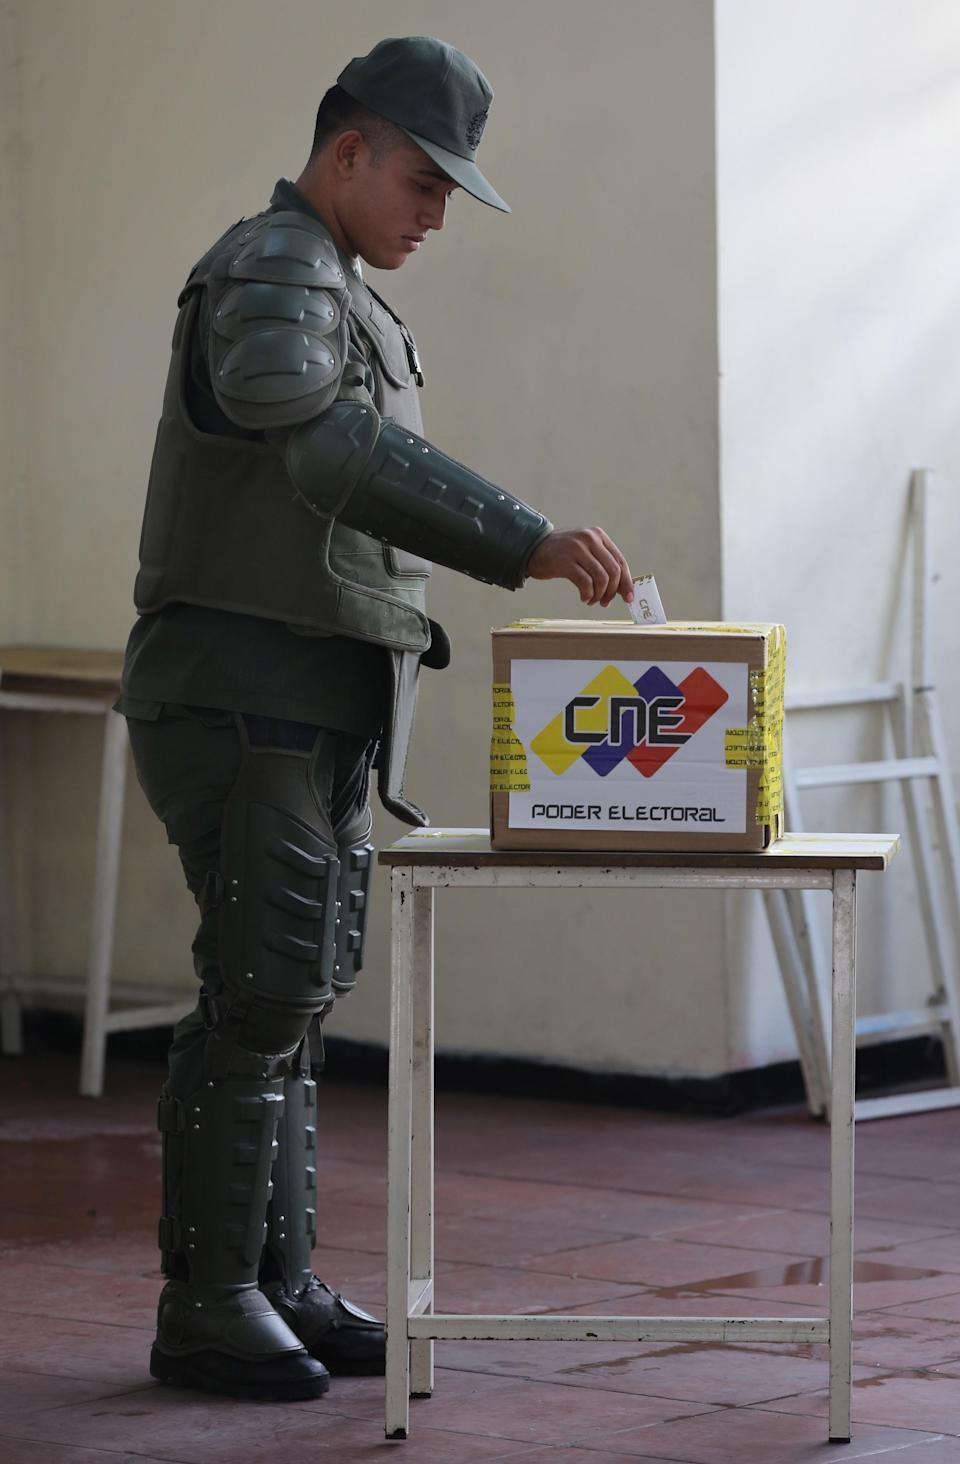 A soldier wearing protective gear casts his vote during municipal elections in Caracas, Venezuela, Sunday, Dec. 8, 2013. Venezuelans head to the polls to elect mayors and city councilors at a moment when the country's economic troubles have deepened, with inflation touching a two-decade high of 54 percent, and shortages of everything from toilet paper to milk spreading while the black market value of the currency plunges. (AP Photo/Ariana Cubillos)